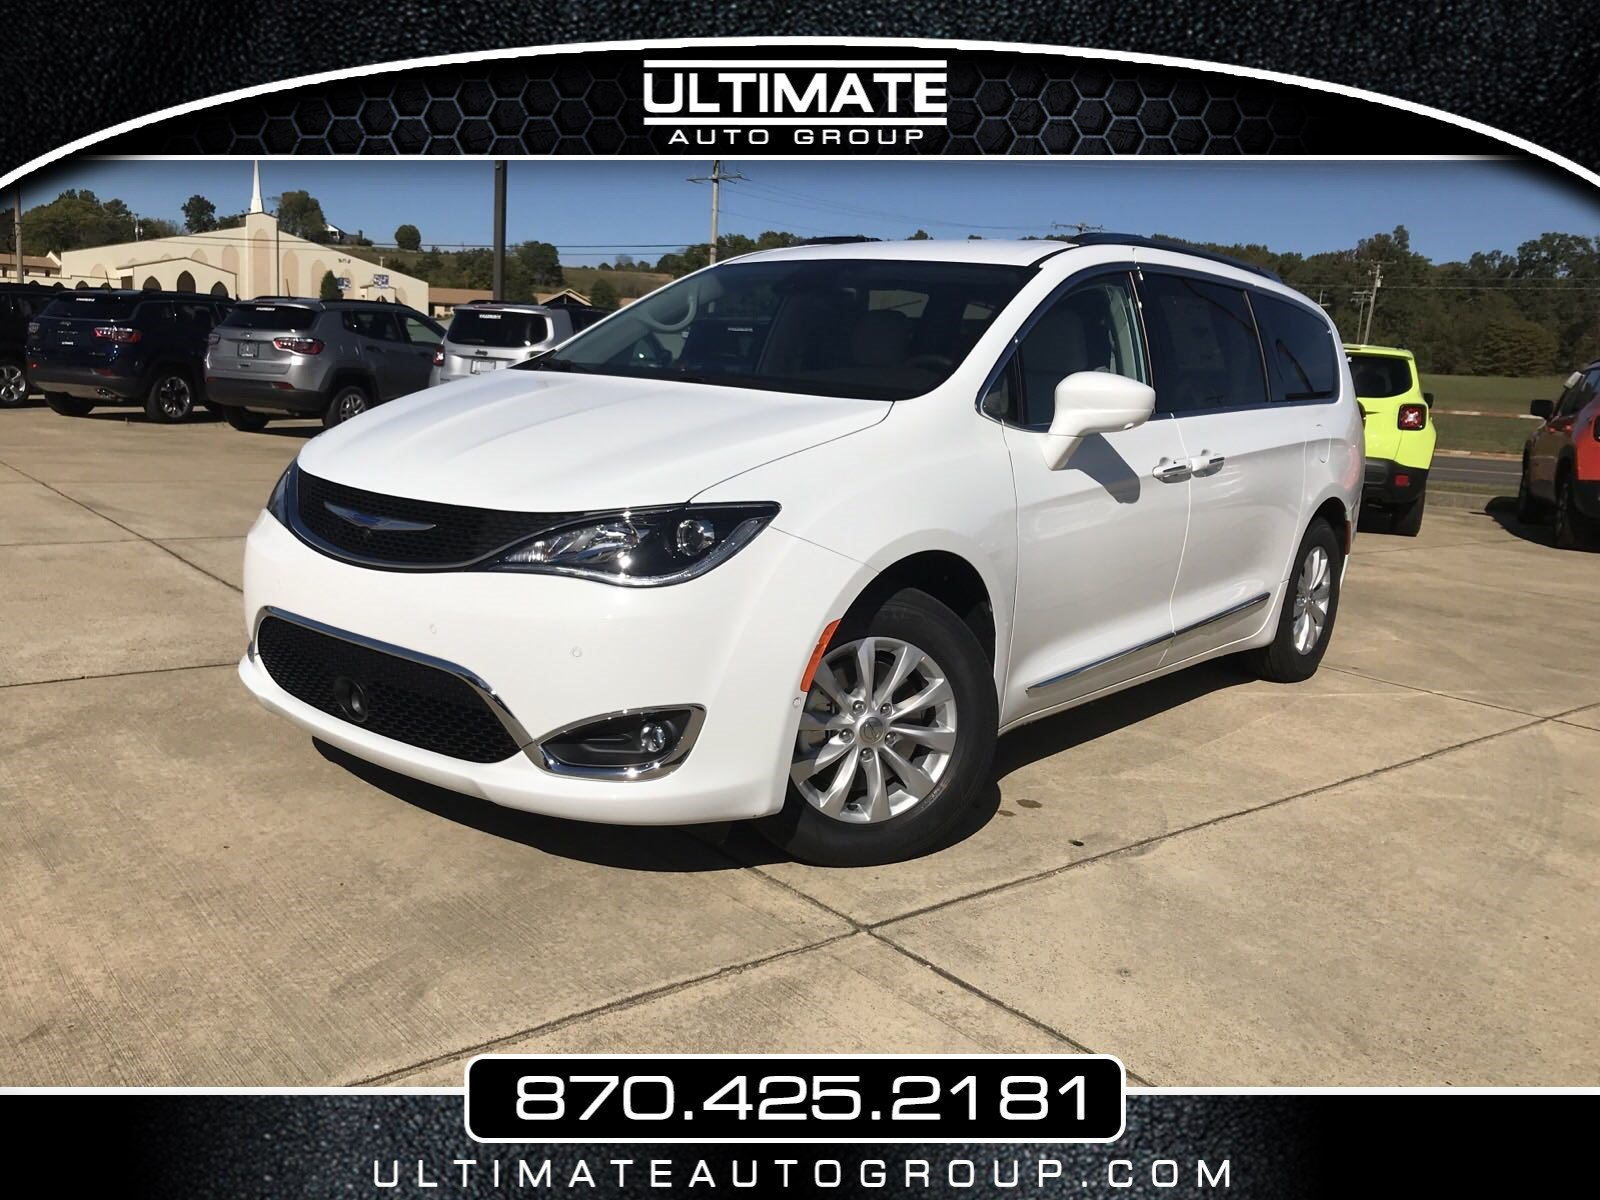 2019 Chrysler Pacifica Passenger Van